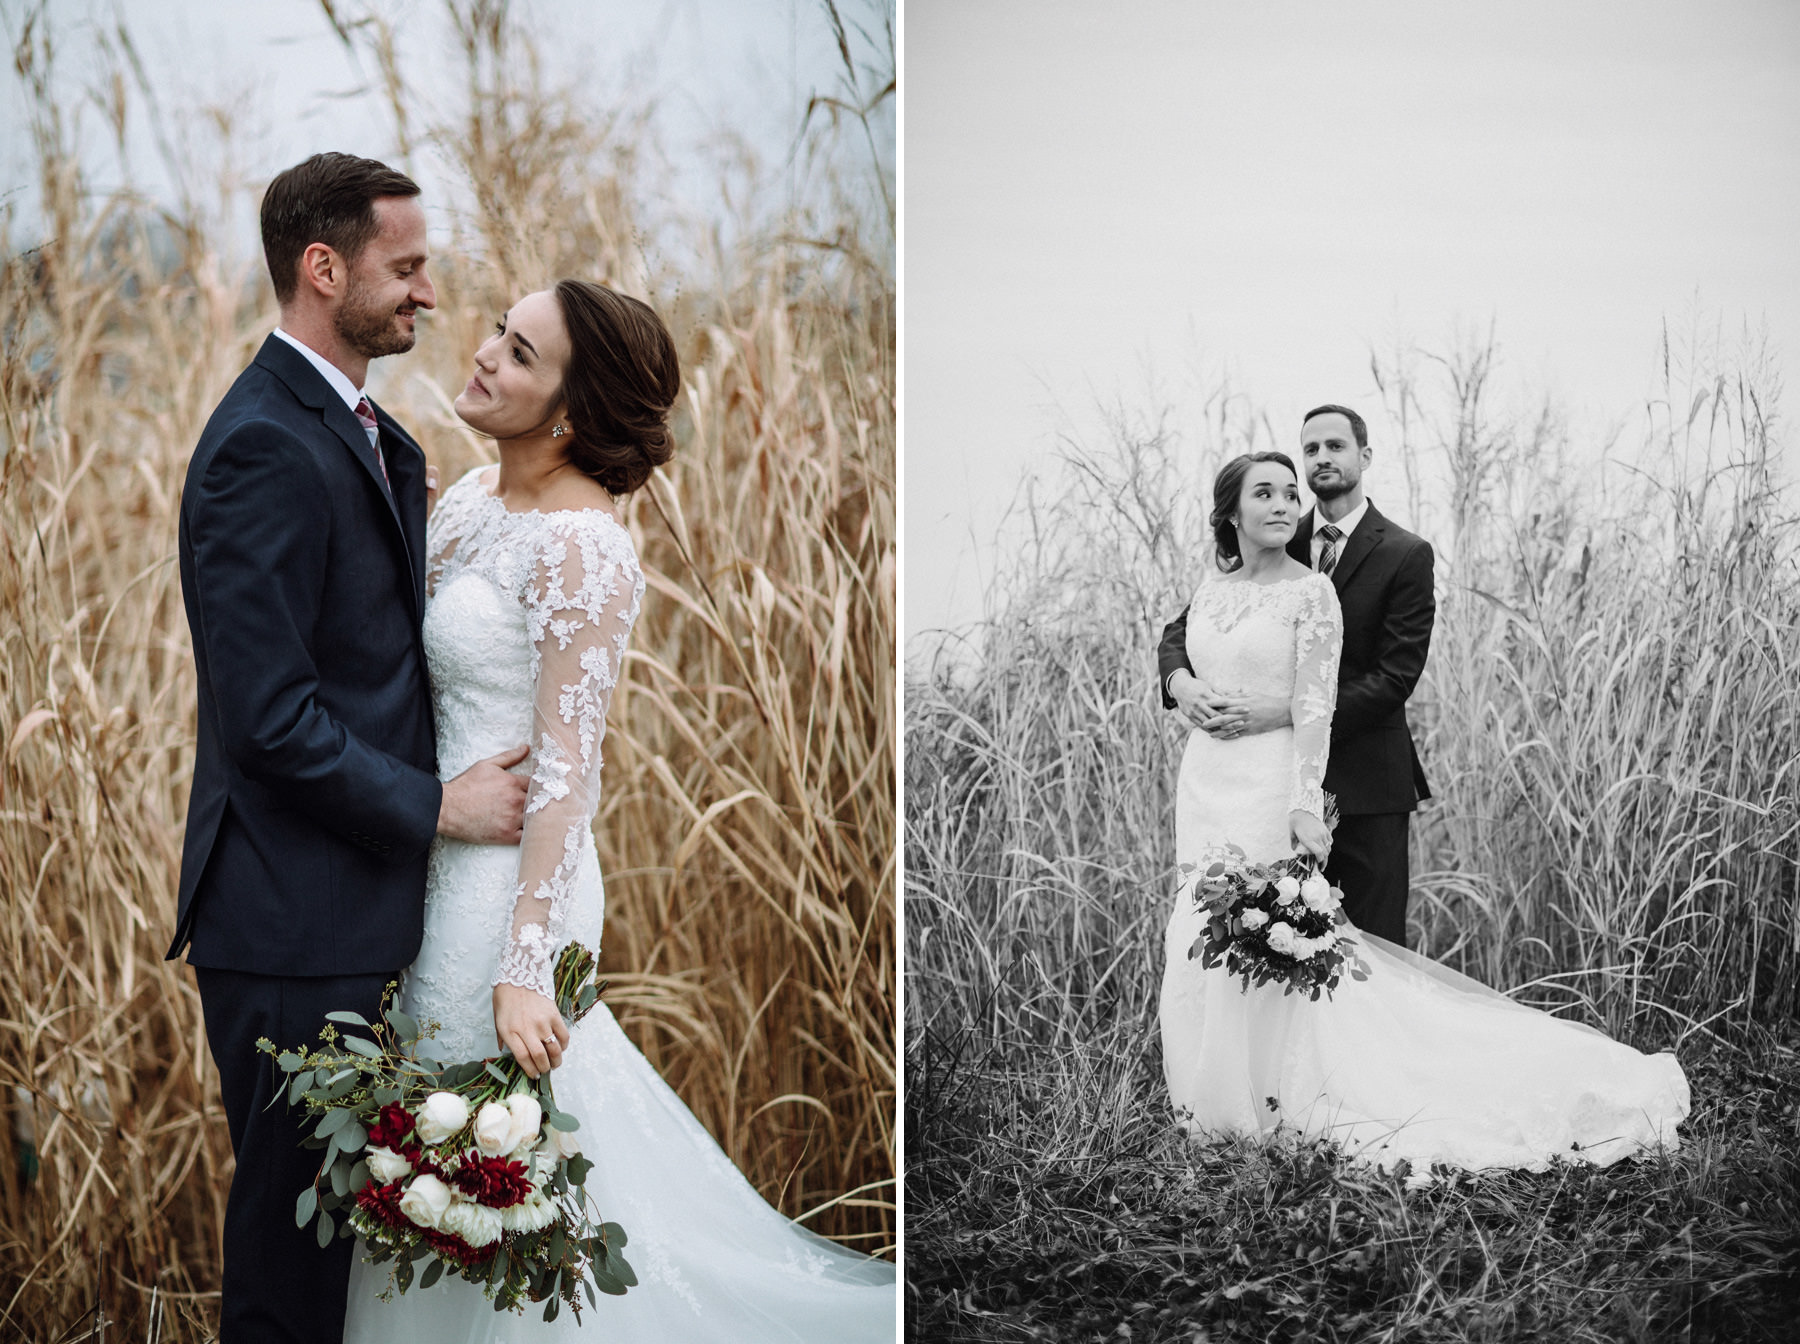 164_Weston Red Barn Farm Winter Wedding Kansas City, Missouri_Kindling Wedding Photography.JPG